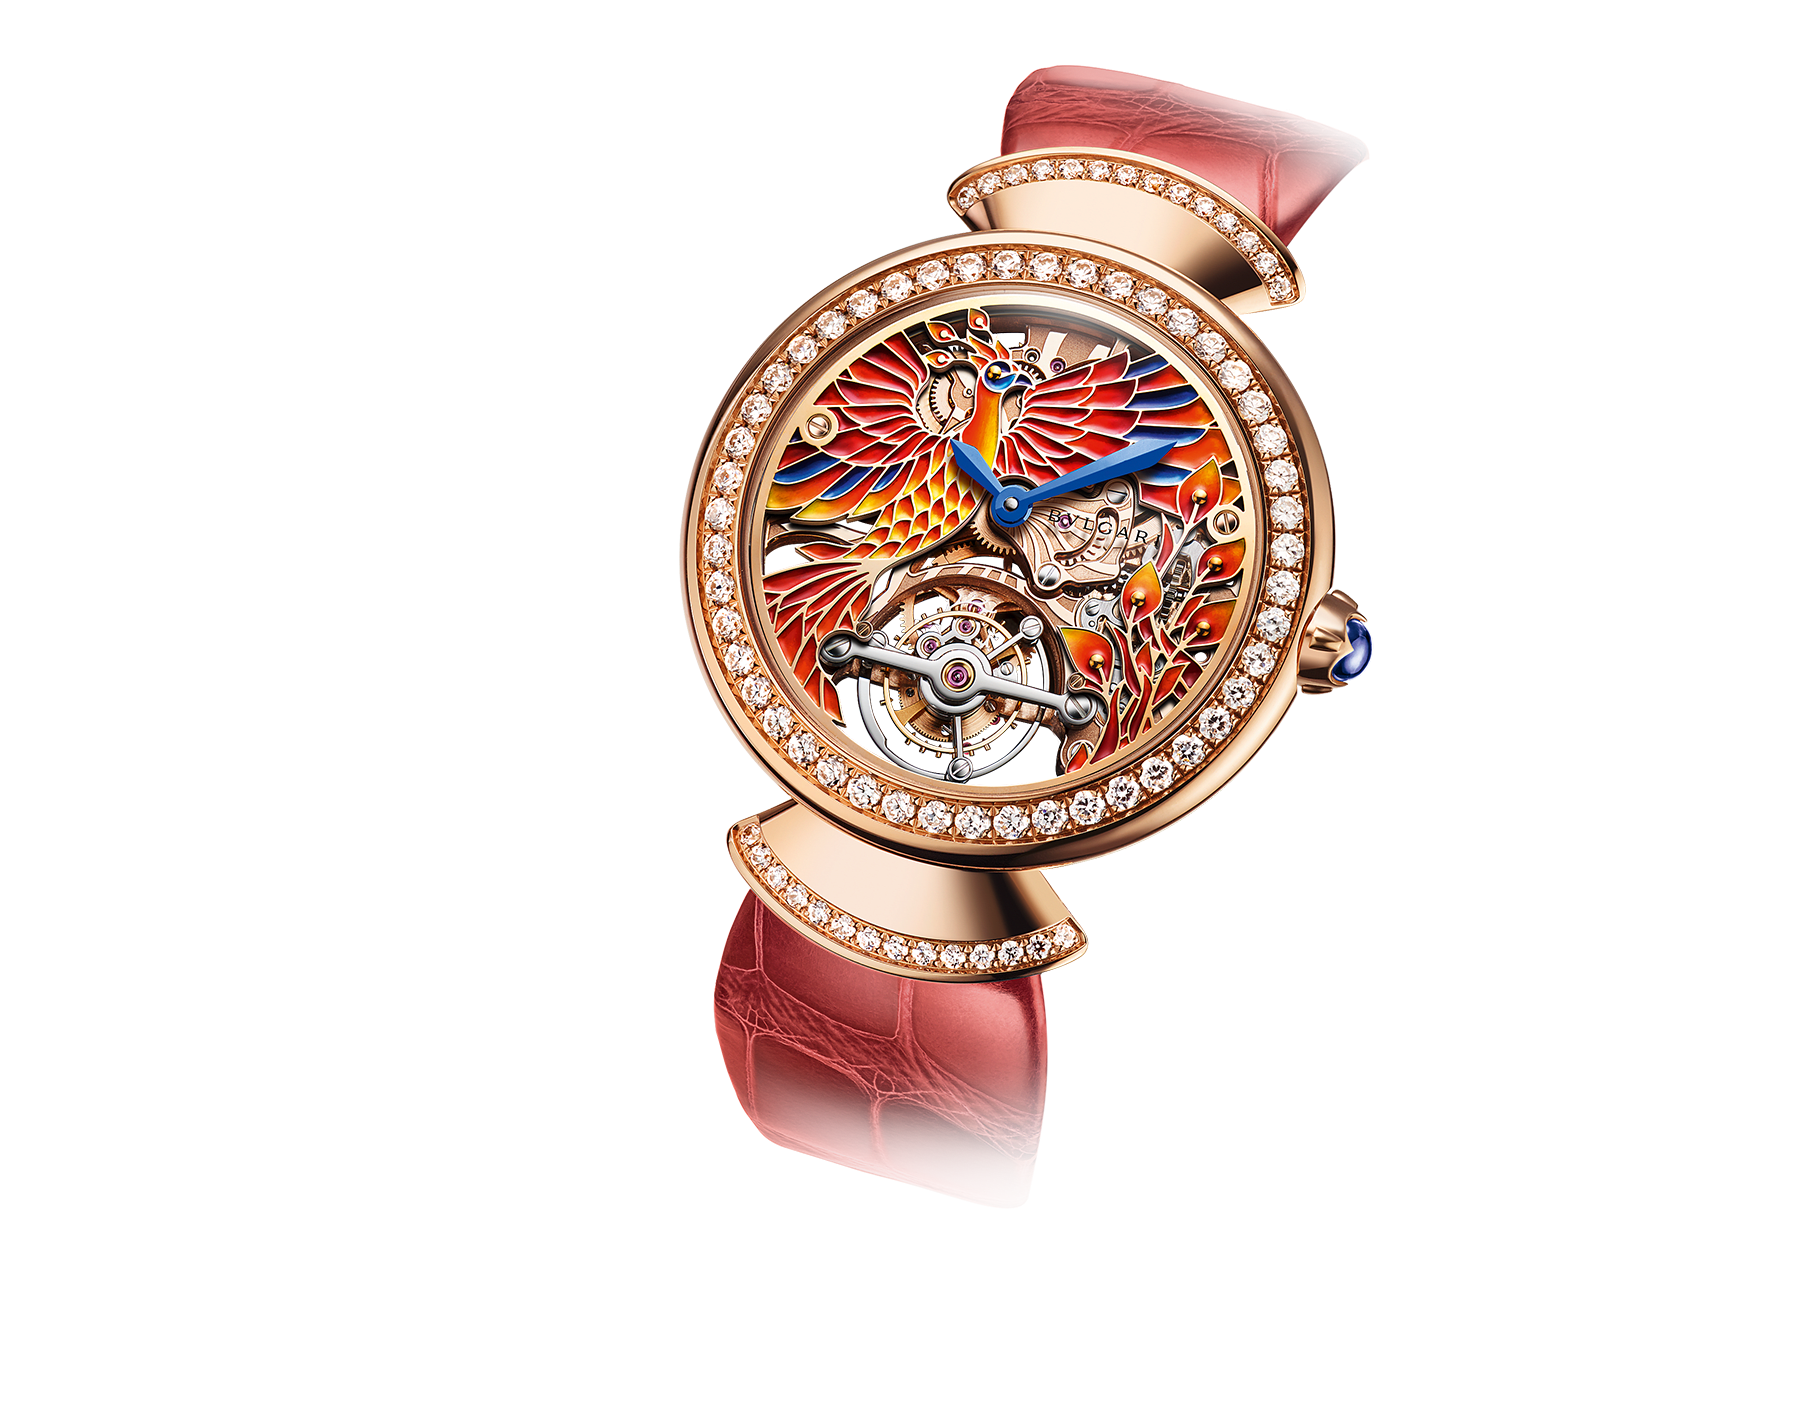 Divina Tourbillon Phoenix Limited Edition watch with mechanical manufacture movement, manual winding, see-through tourbillon, 18 kt rose gold case set with brilliant-cut diamonds, skeletonized dial decorated with hand painted miniature motifs of a phoenix and flames, and red alligator bracelet 102947 image 2